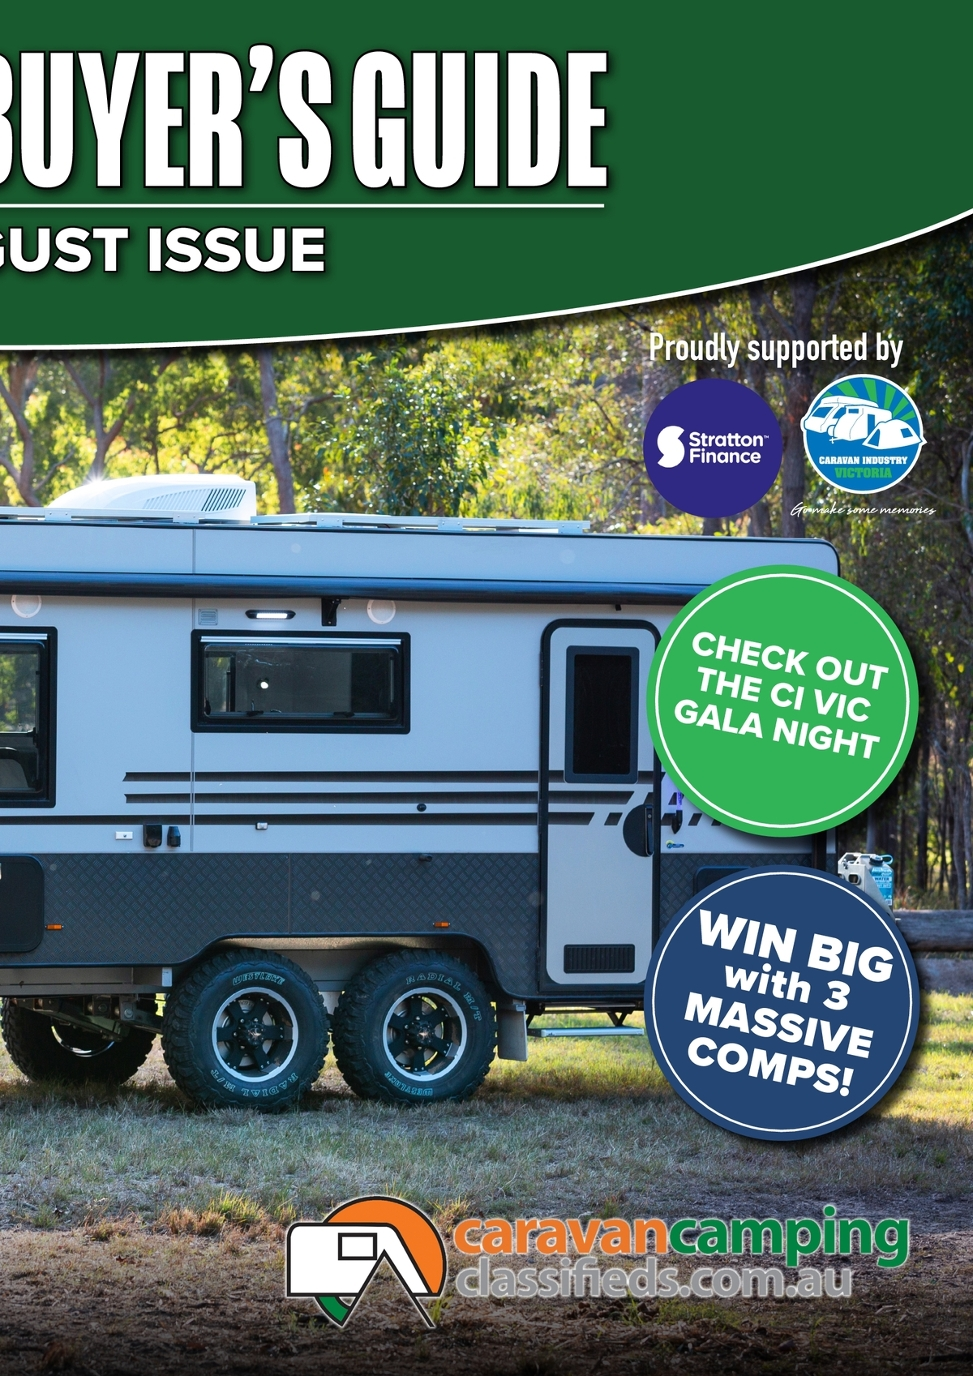 RV National Buyer's Guide -July/August - Caravan Camping Classifieds